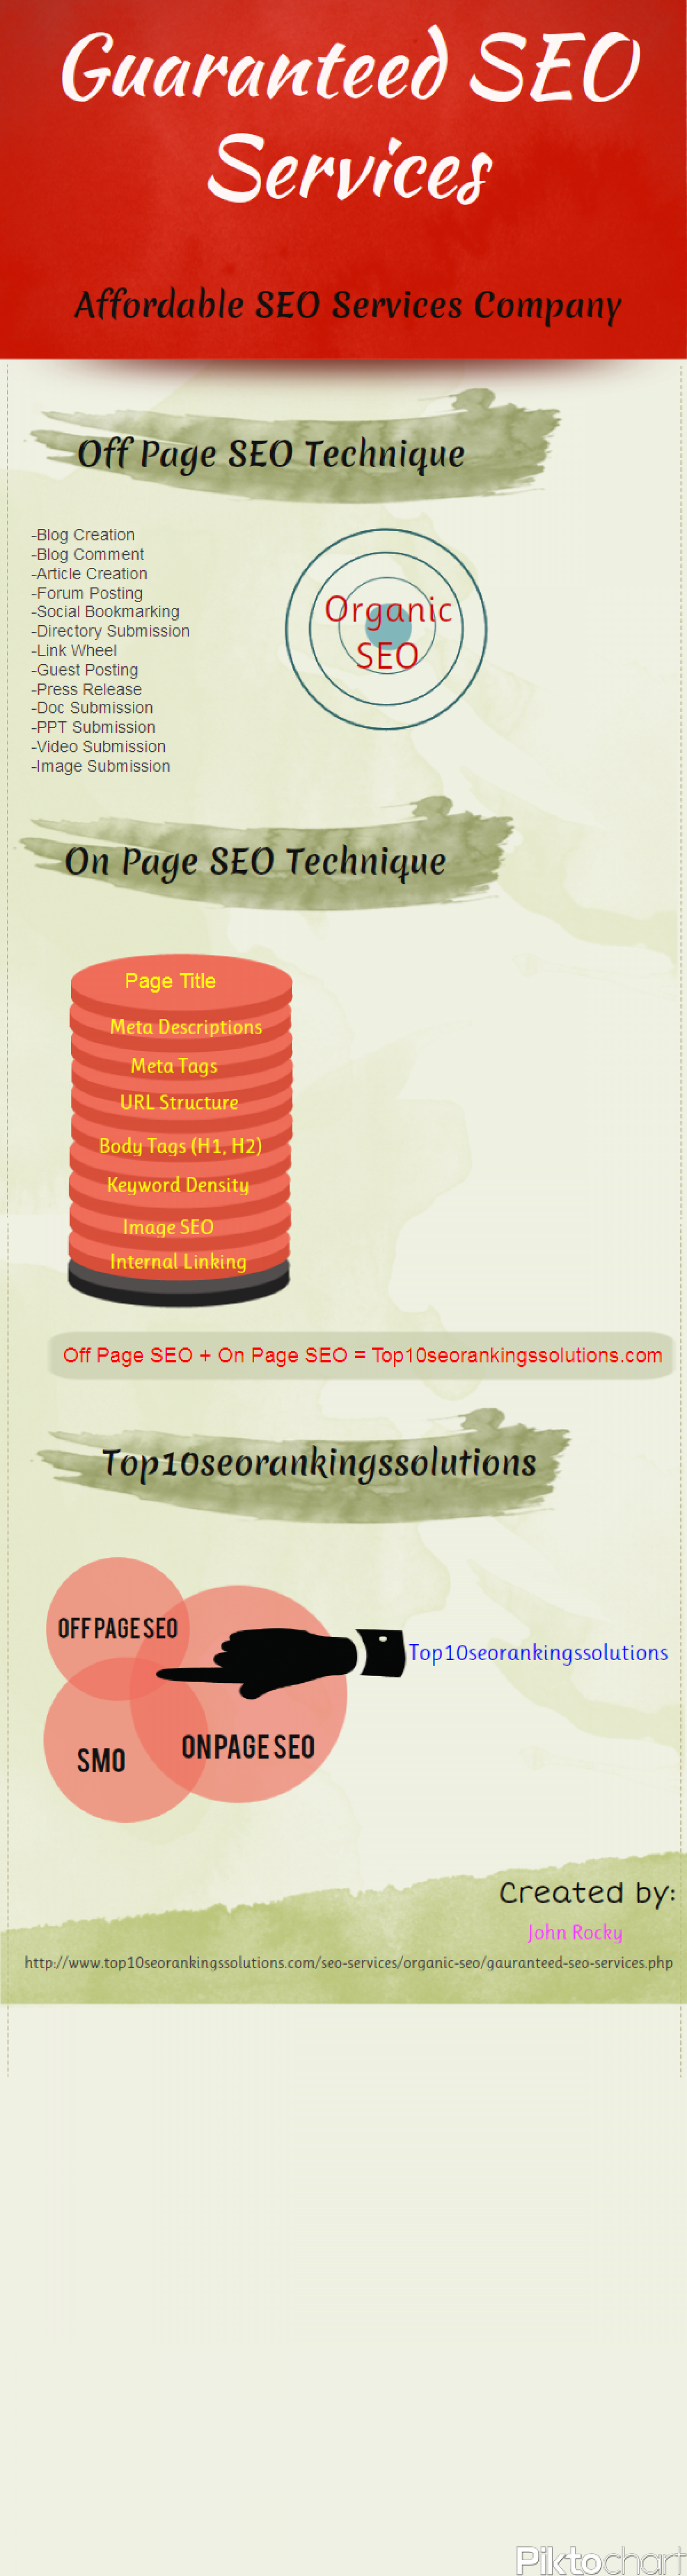 Guaranteed SEO Services Infographic